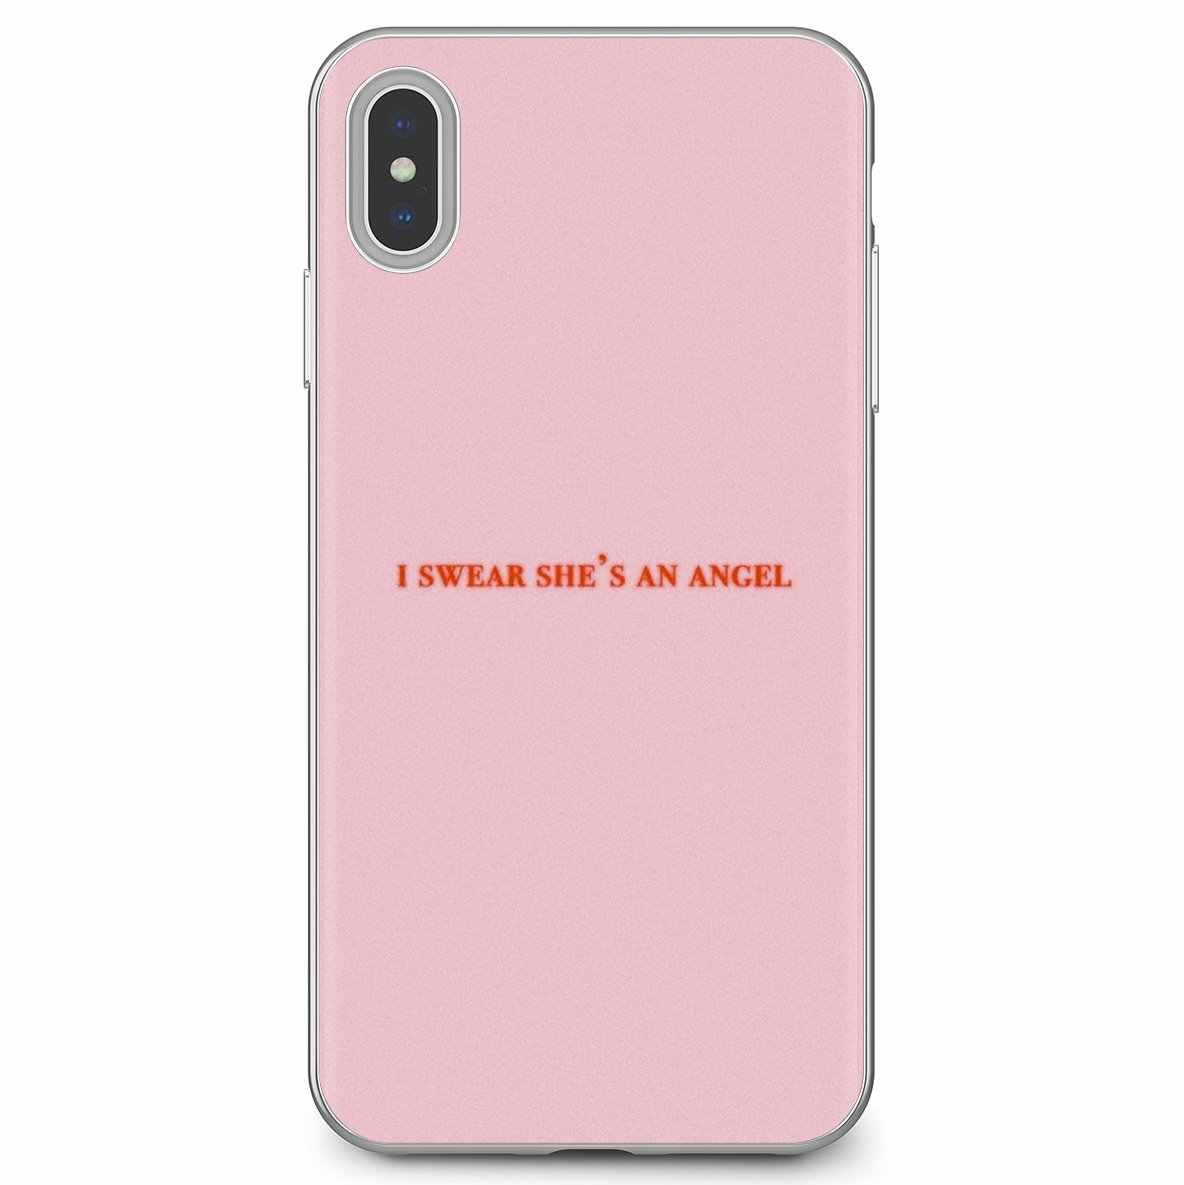 Pastel Pink Wallpaper Adorable Silicone Phone Case For Iphone 11 Pro 4 4s 5 5s Se 5c 6 6s 7 8 X 10 Xr Xs Plus Max For Ipod Touch Phone Case Covers Aliexpress